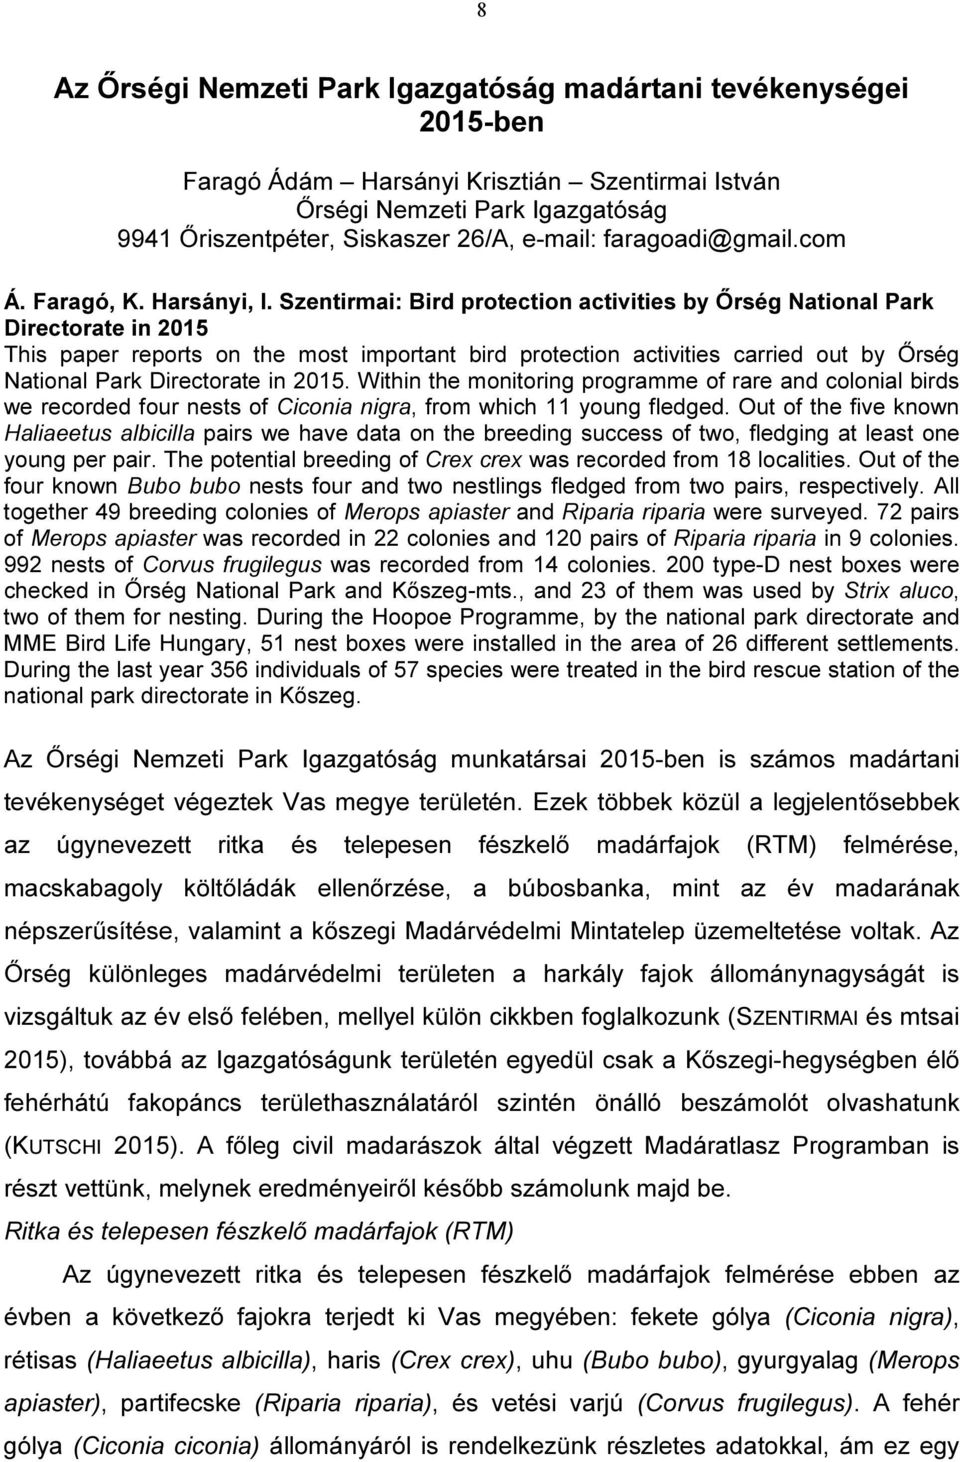 Szentirmai: Bird protection activities by Őrség National Park Directorate in 2015 This paper reports on the most important bird protection activities carried out by Őrség National Park Directorate in